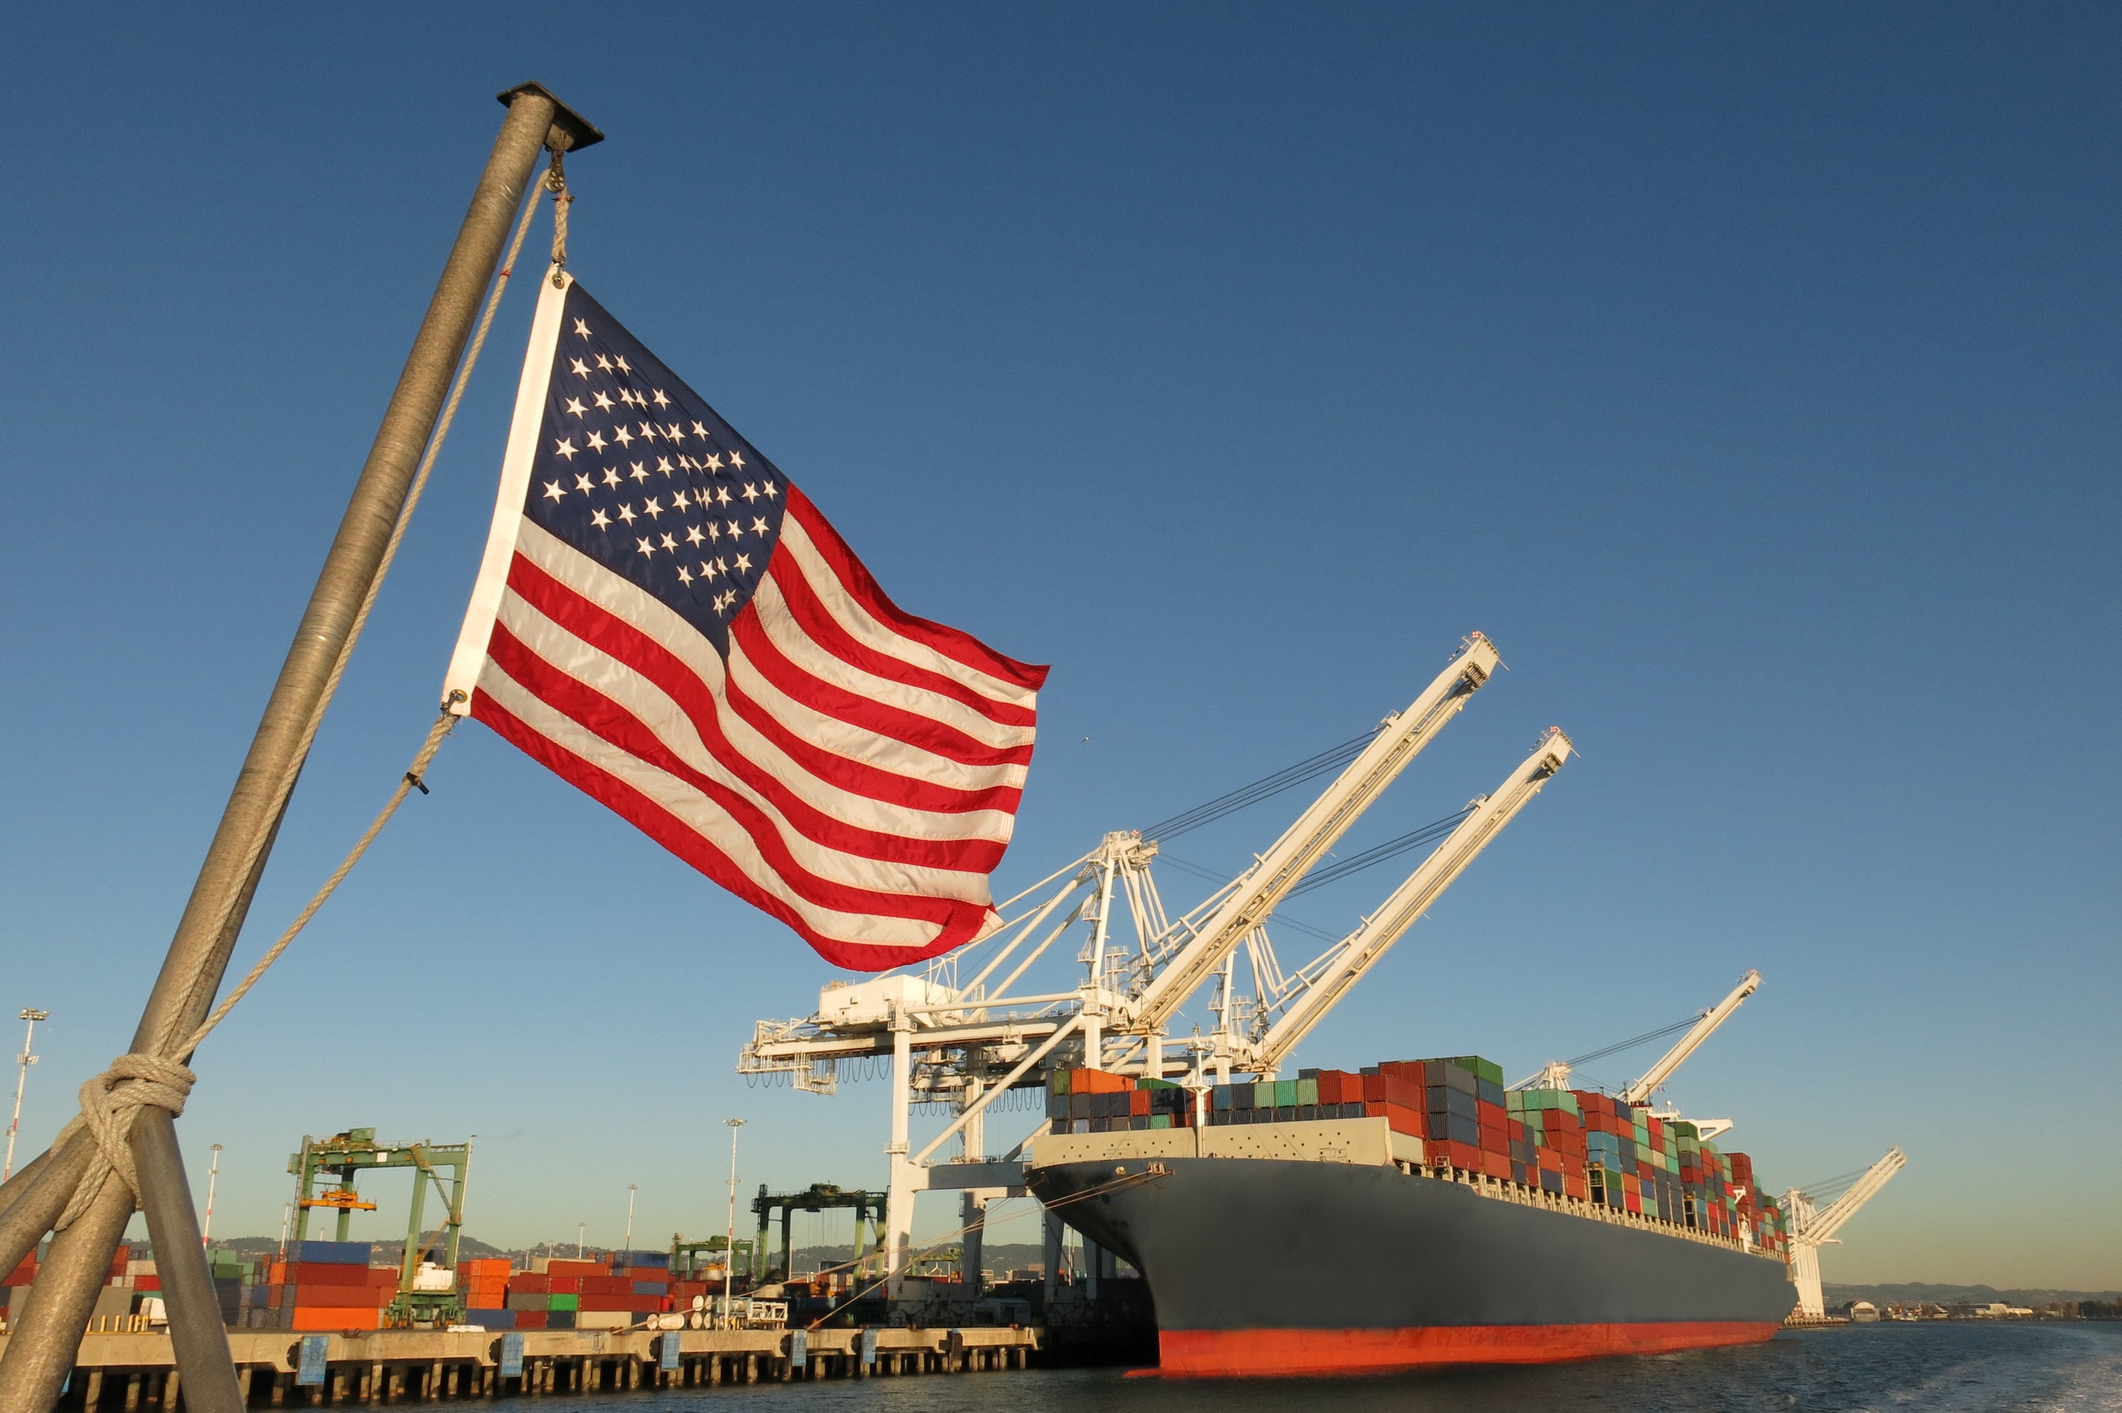 MOPS honors America's Mariners on National Maritime Day